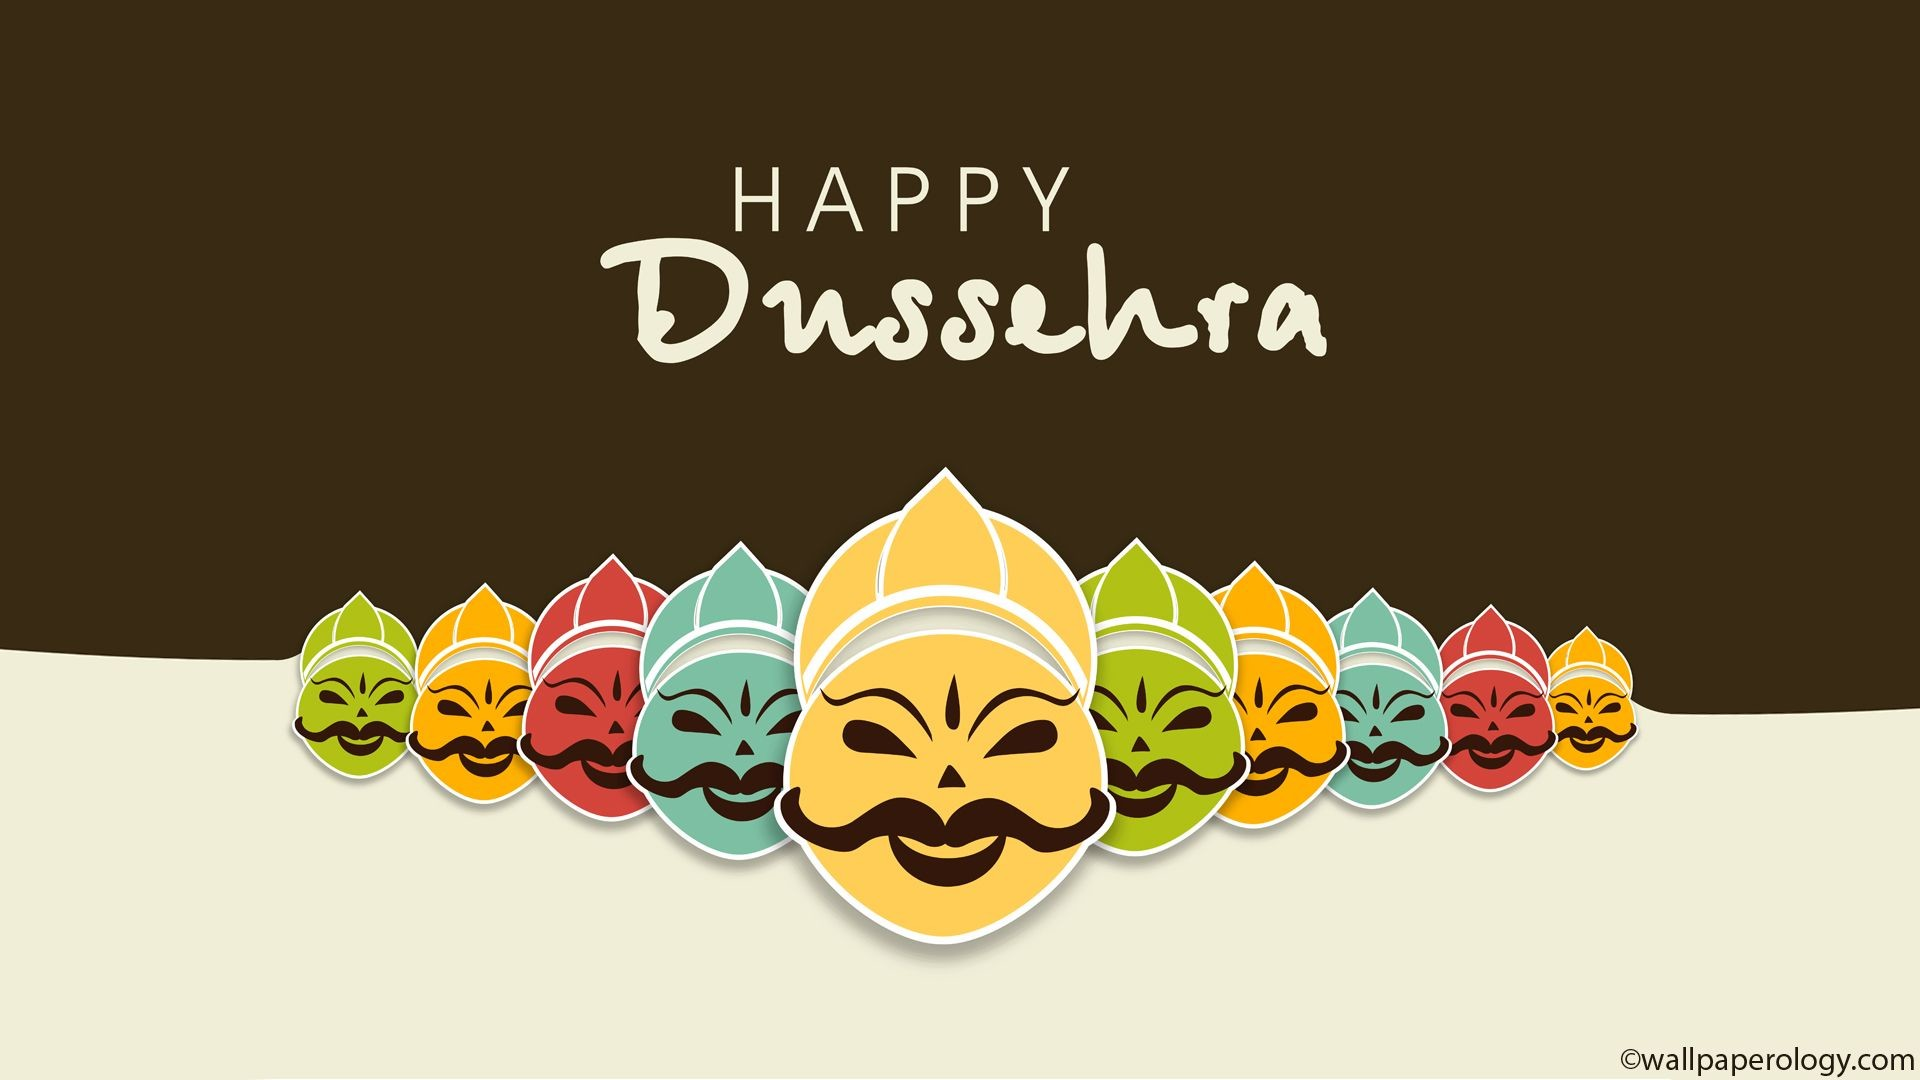 Res: 1920x1080, Idyll Dental: Wish you a Very Happy Dussehra.